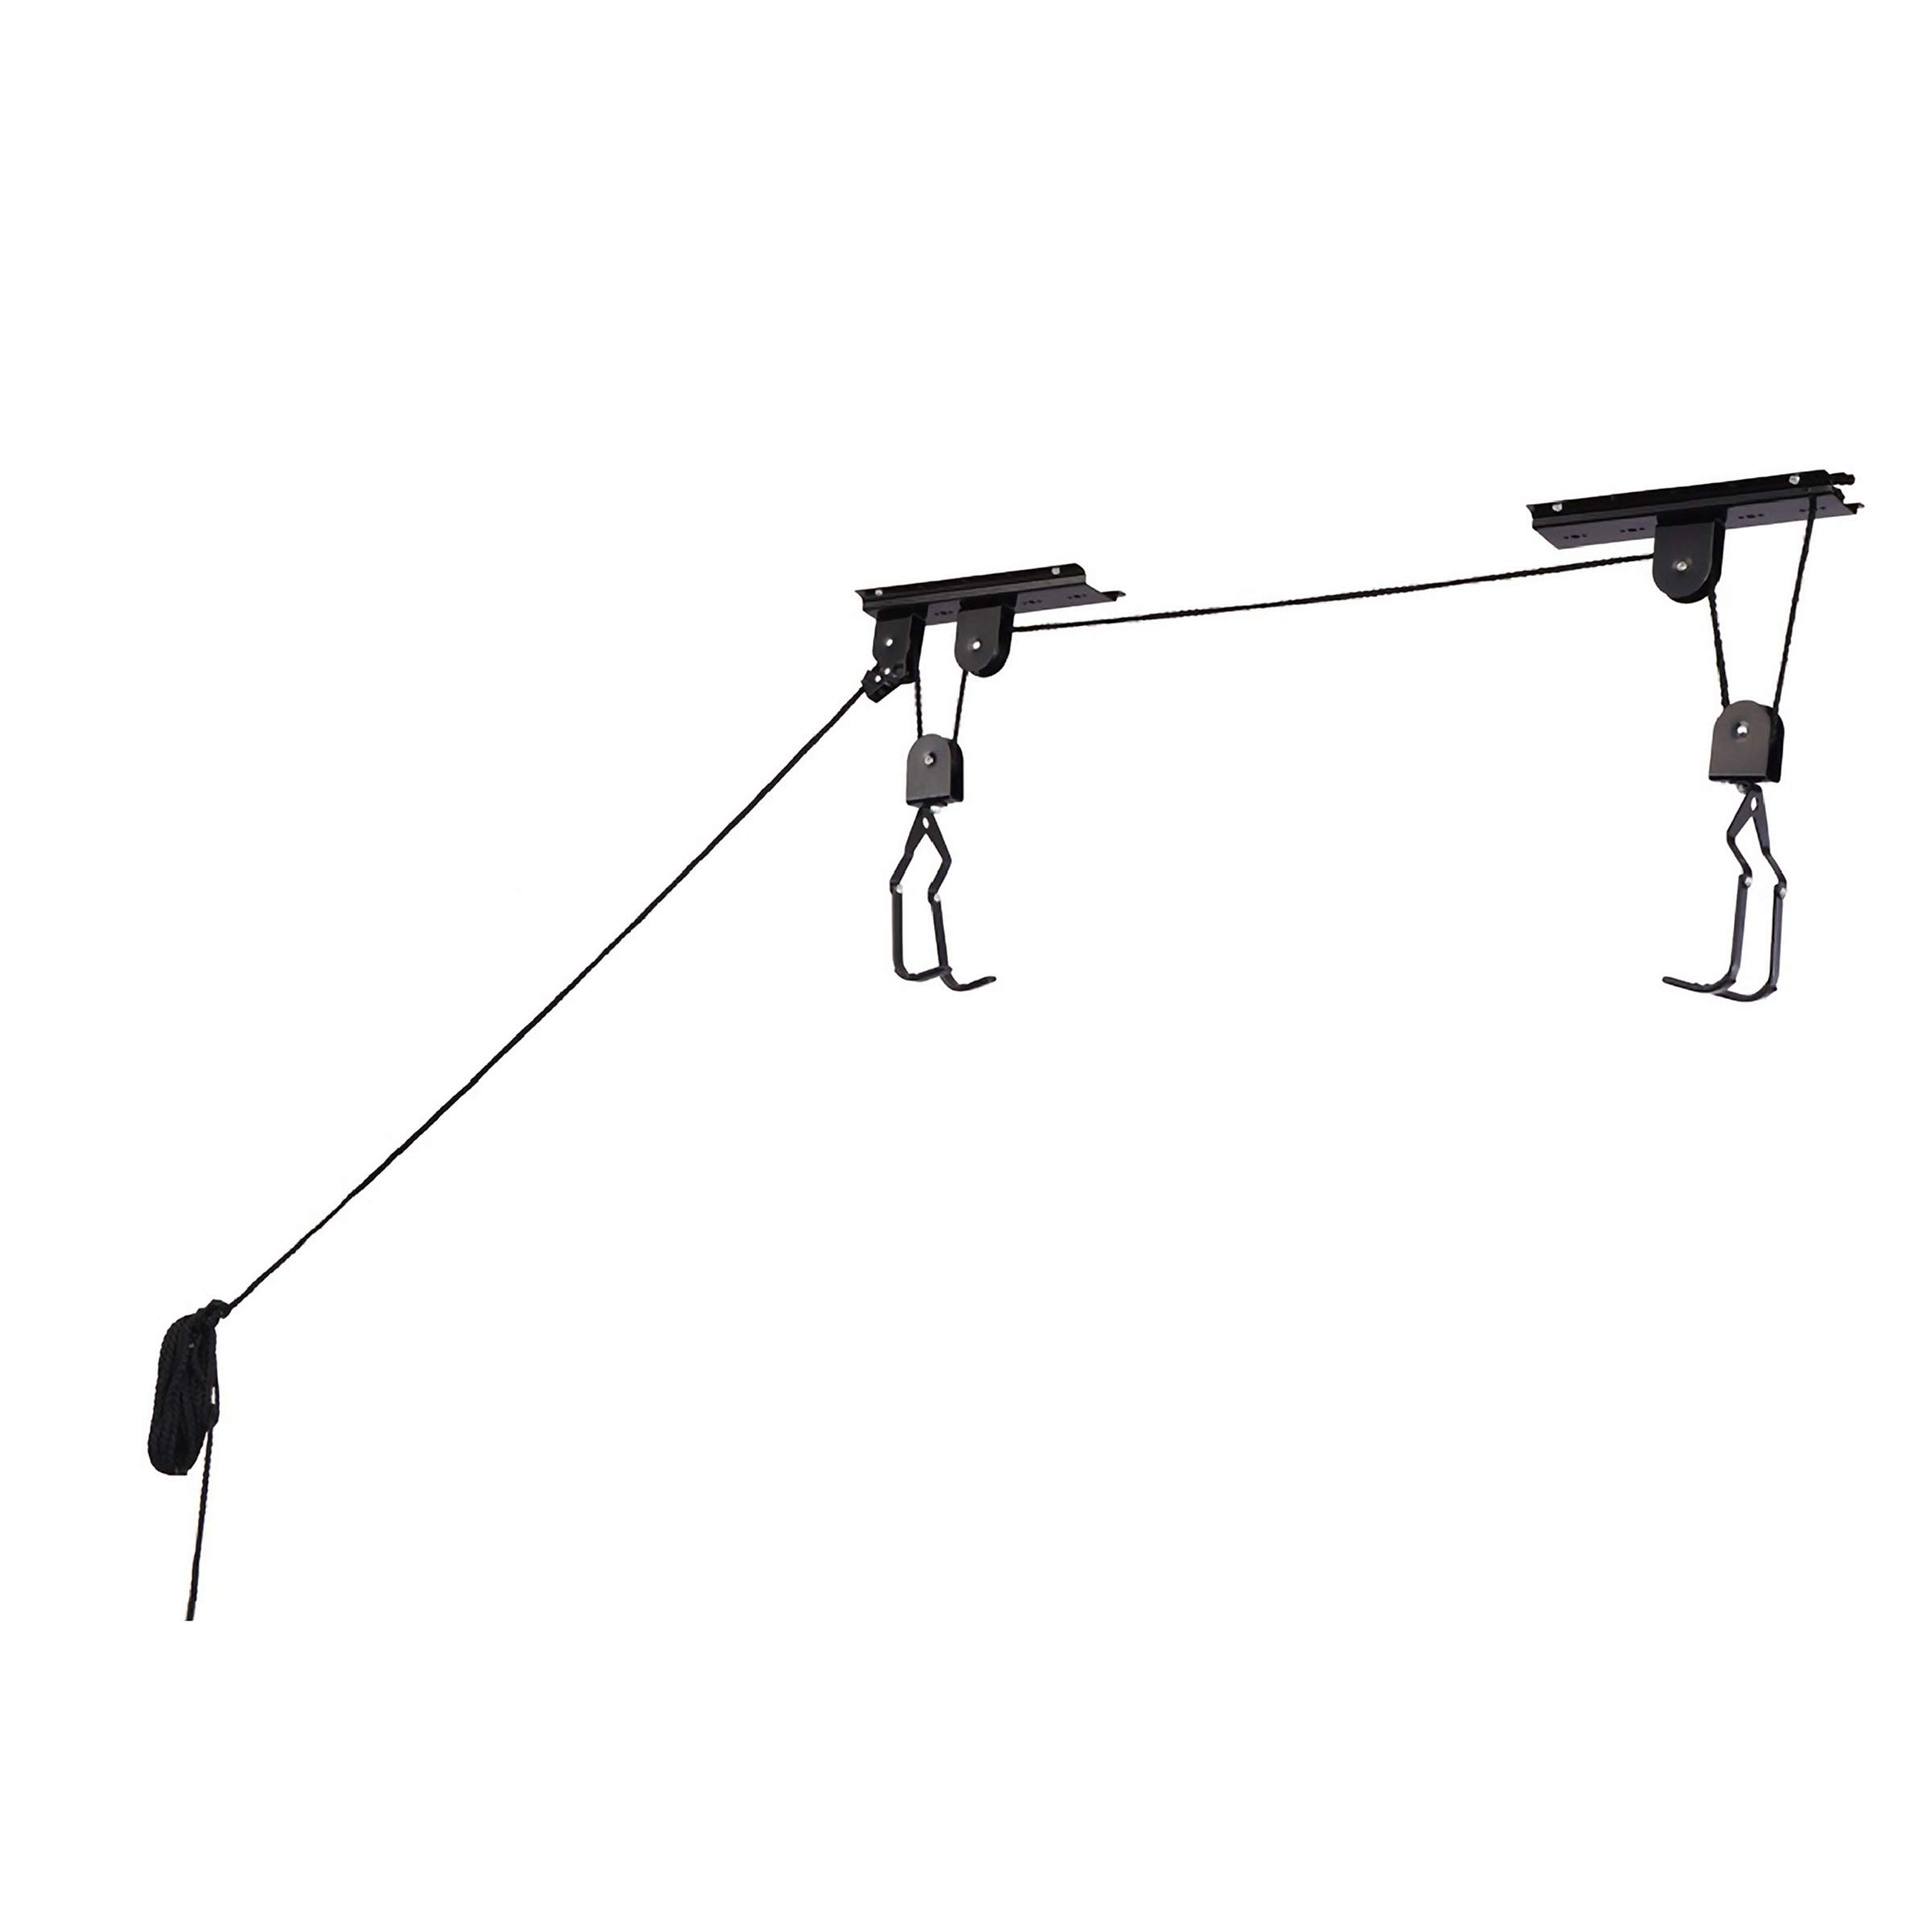 2005 RAD Cycle Products Heavy Duty Bike Lift